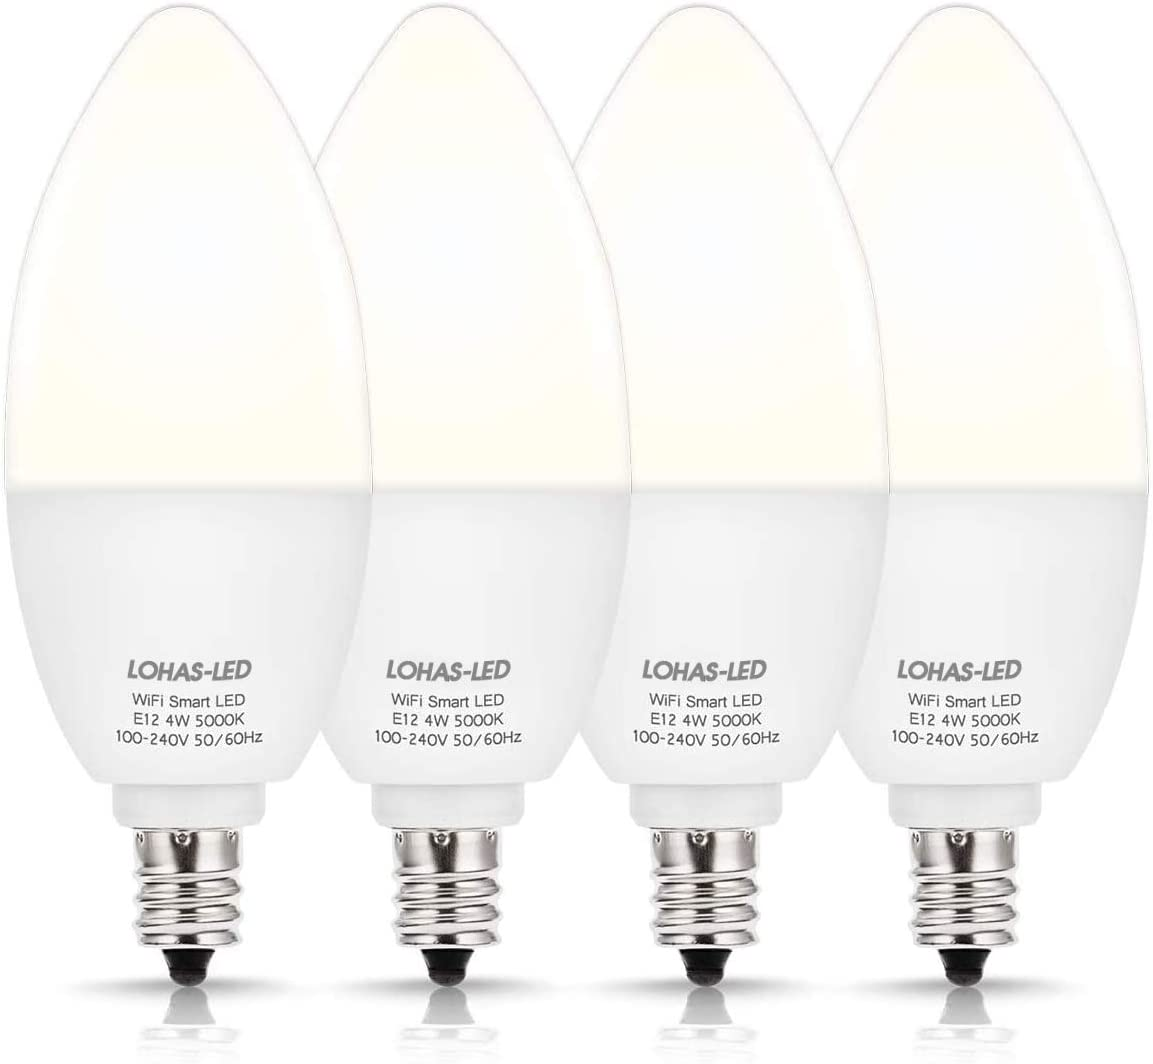 LOHAS-LED Smart LED Bulbs, Candelabra Base E12 LED Bulb Dimmable Smart Daylight 50W Equivalent, 5000K LED WiFi Bulb No Hub Required Work with Alexa Google Home for Chandelier Ceiling Fan Bulb, 4Pack